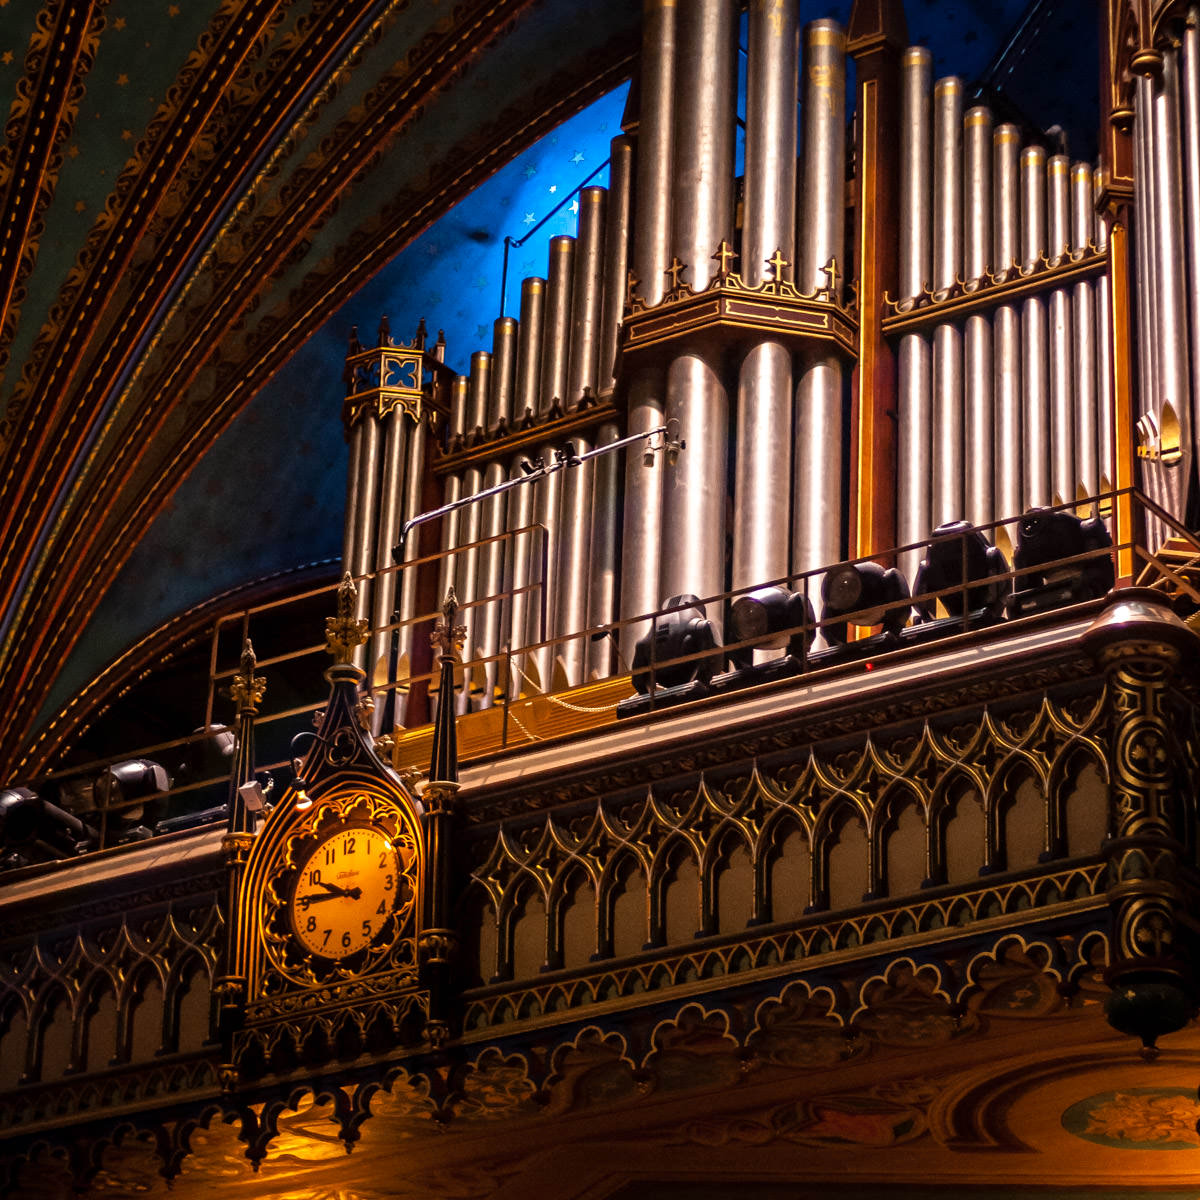 Detail of the pipe organ at the Basilique Notre-Dame de Montréal.